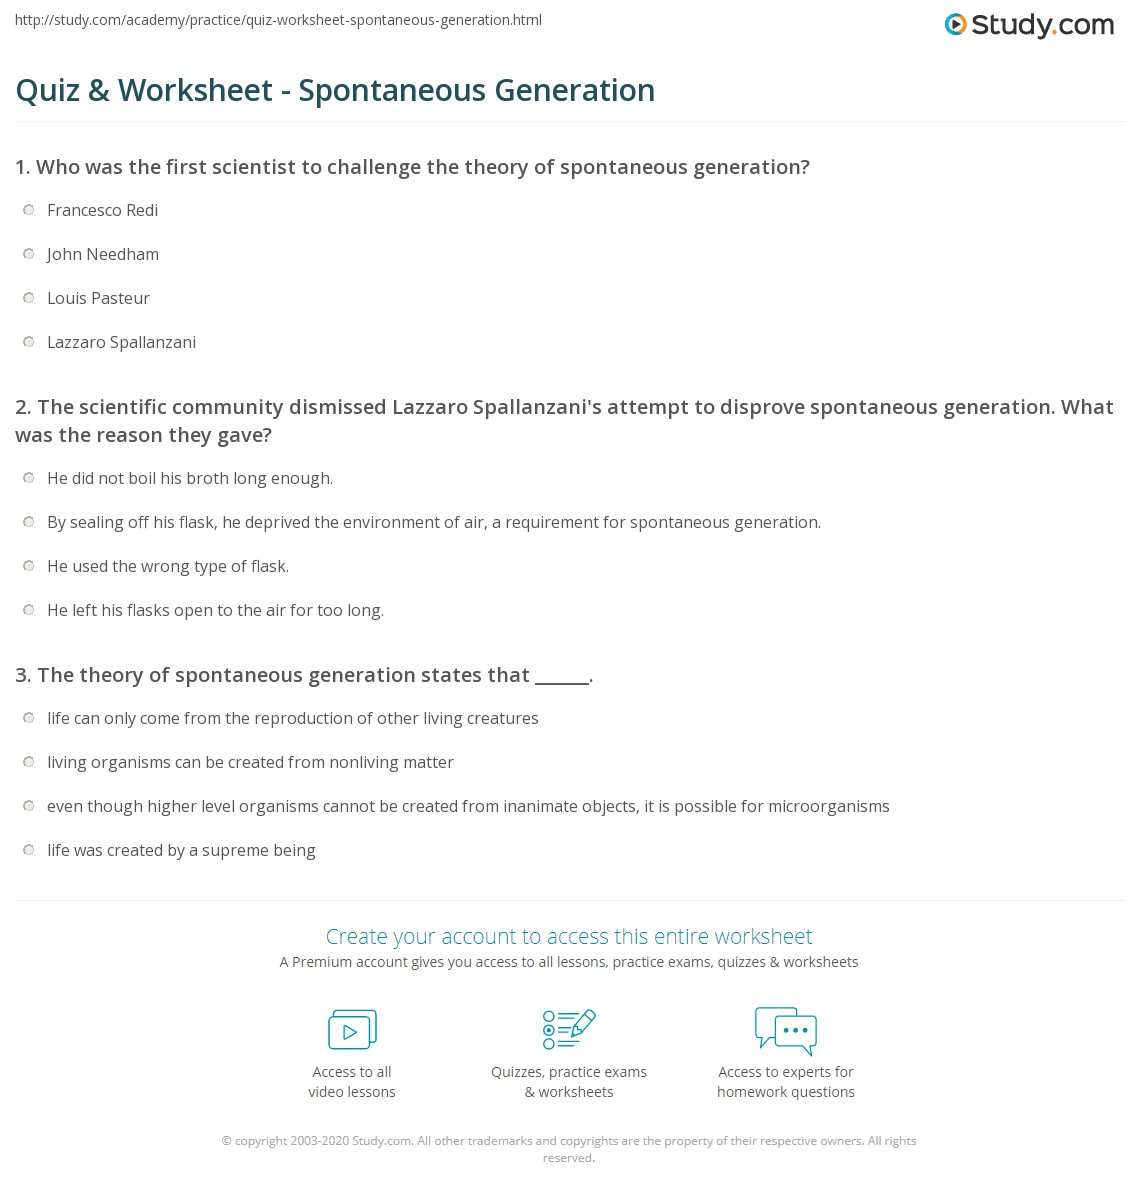 Aldiablosus  Pleasant Quiz Amp Worksheet  Spontaneous Generation  Studycom With Magnificent Print Spontaneous Generation Definition Theory Amp Examples Worksheet With Astounding Worksheets On Prime Numbers Also Capital Letters And Full Stops Worksheets Ks In Addition Free Printable Division Worksheets For Rd Grade And Preposition Worksheets For Th Grade As Well As Kidzone Worksheets Kindergarten Additionally Possible Outcomes Worksheets From Studycom With Aldiablosus  Magnificent Quiz Amp Worksheet  Spontaneous Generation  Studycom With Astounding Print Spontaneous Generation Definition Theory Amp Examples Worksheet And Pleasant Worksheets On Prime Numbers Also Capital Letters And Full Stops Worksheets Ks In Addition Free Printable Division Worksheets For Rd Grade From Studycom